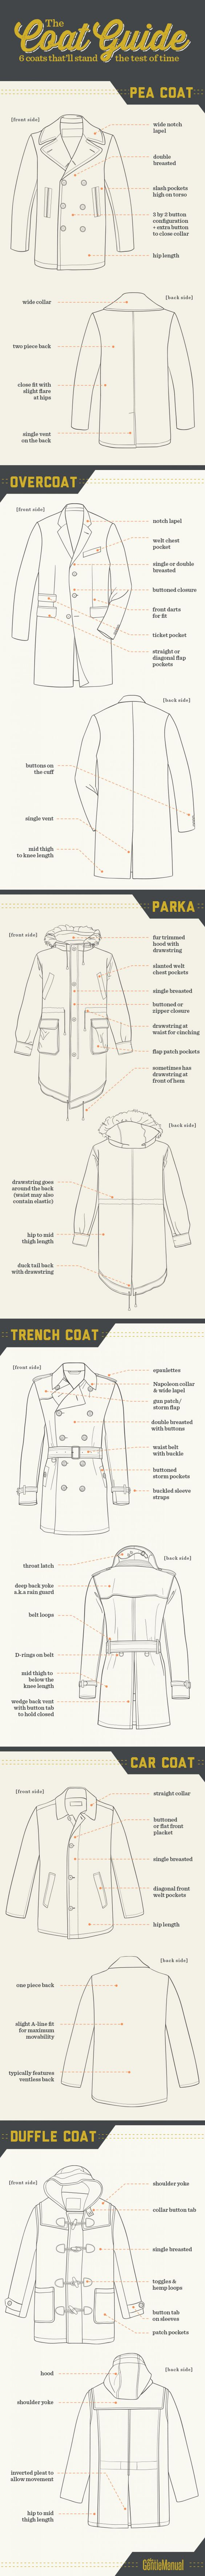 The Coat Guide #infographic #infografía: